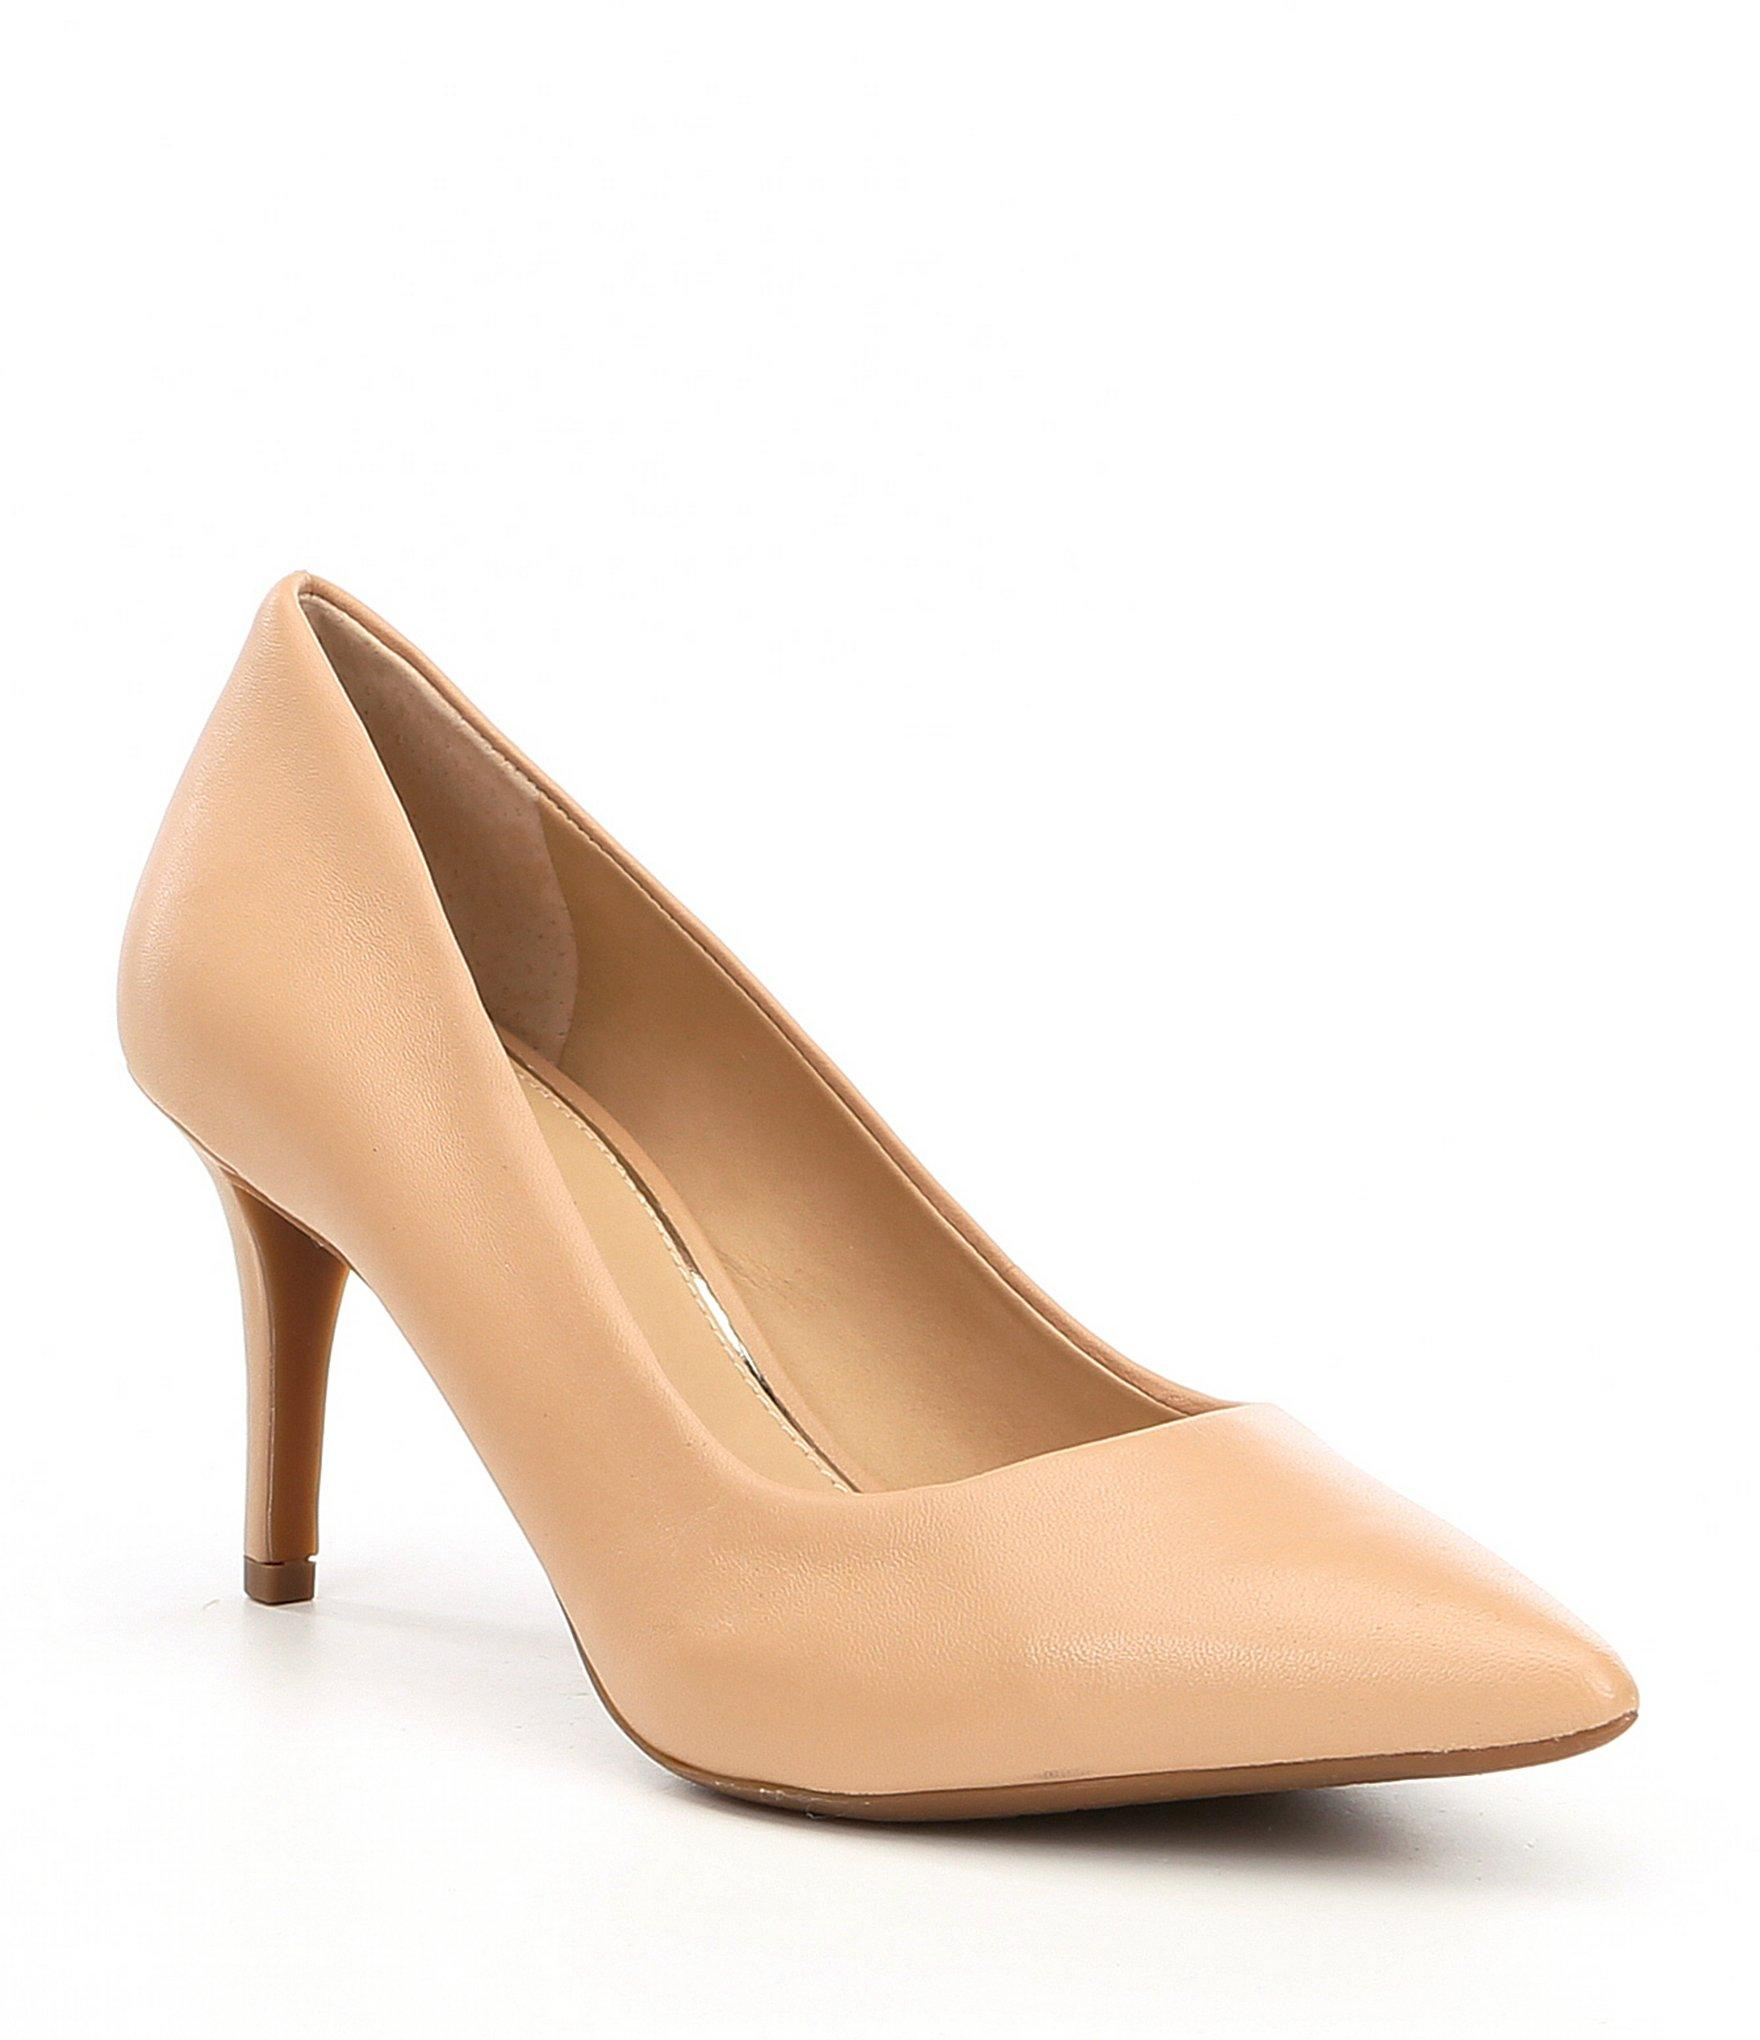 c9e4aab202 Gianni Bini Metilda Leather Pointy Toe Pumps in Natural - Lyst